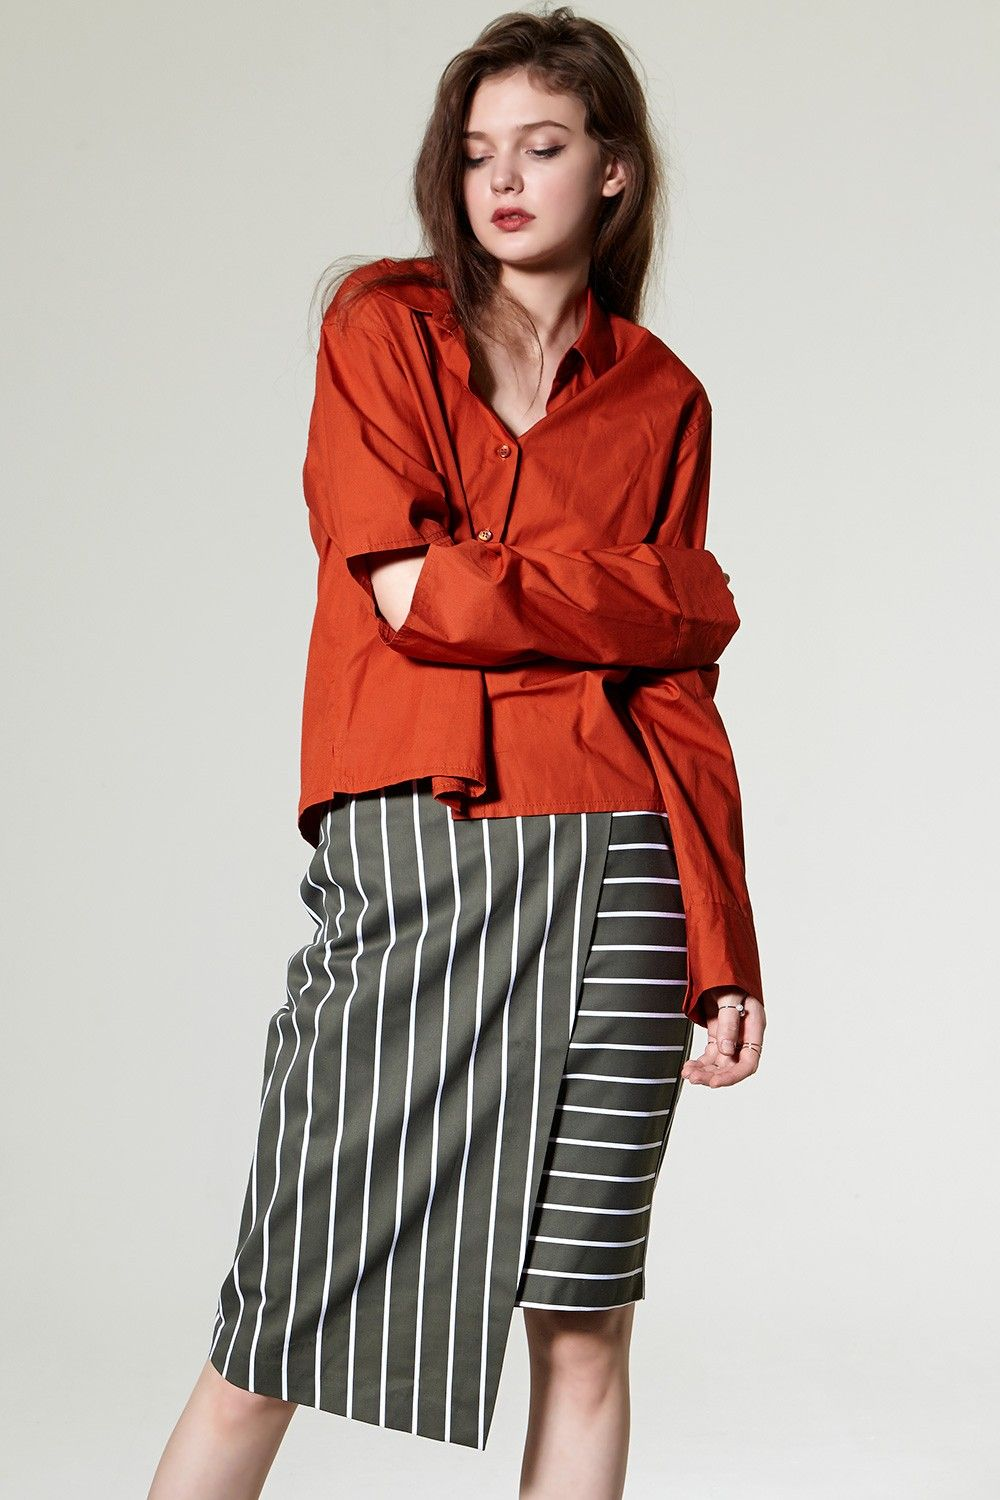 Clothing - All New Arrivals - What's new Discover the latest ...